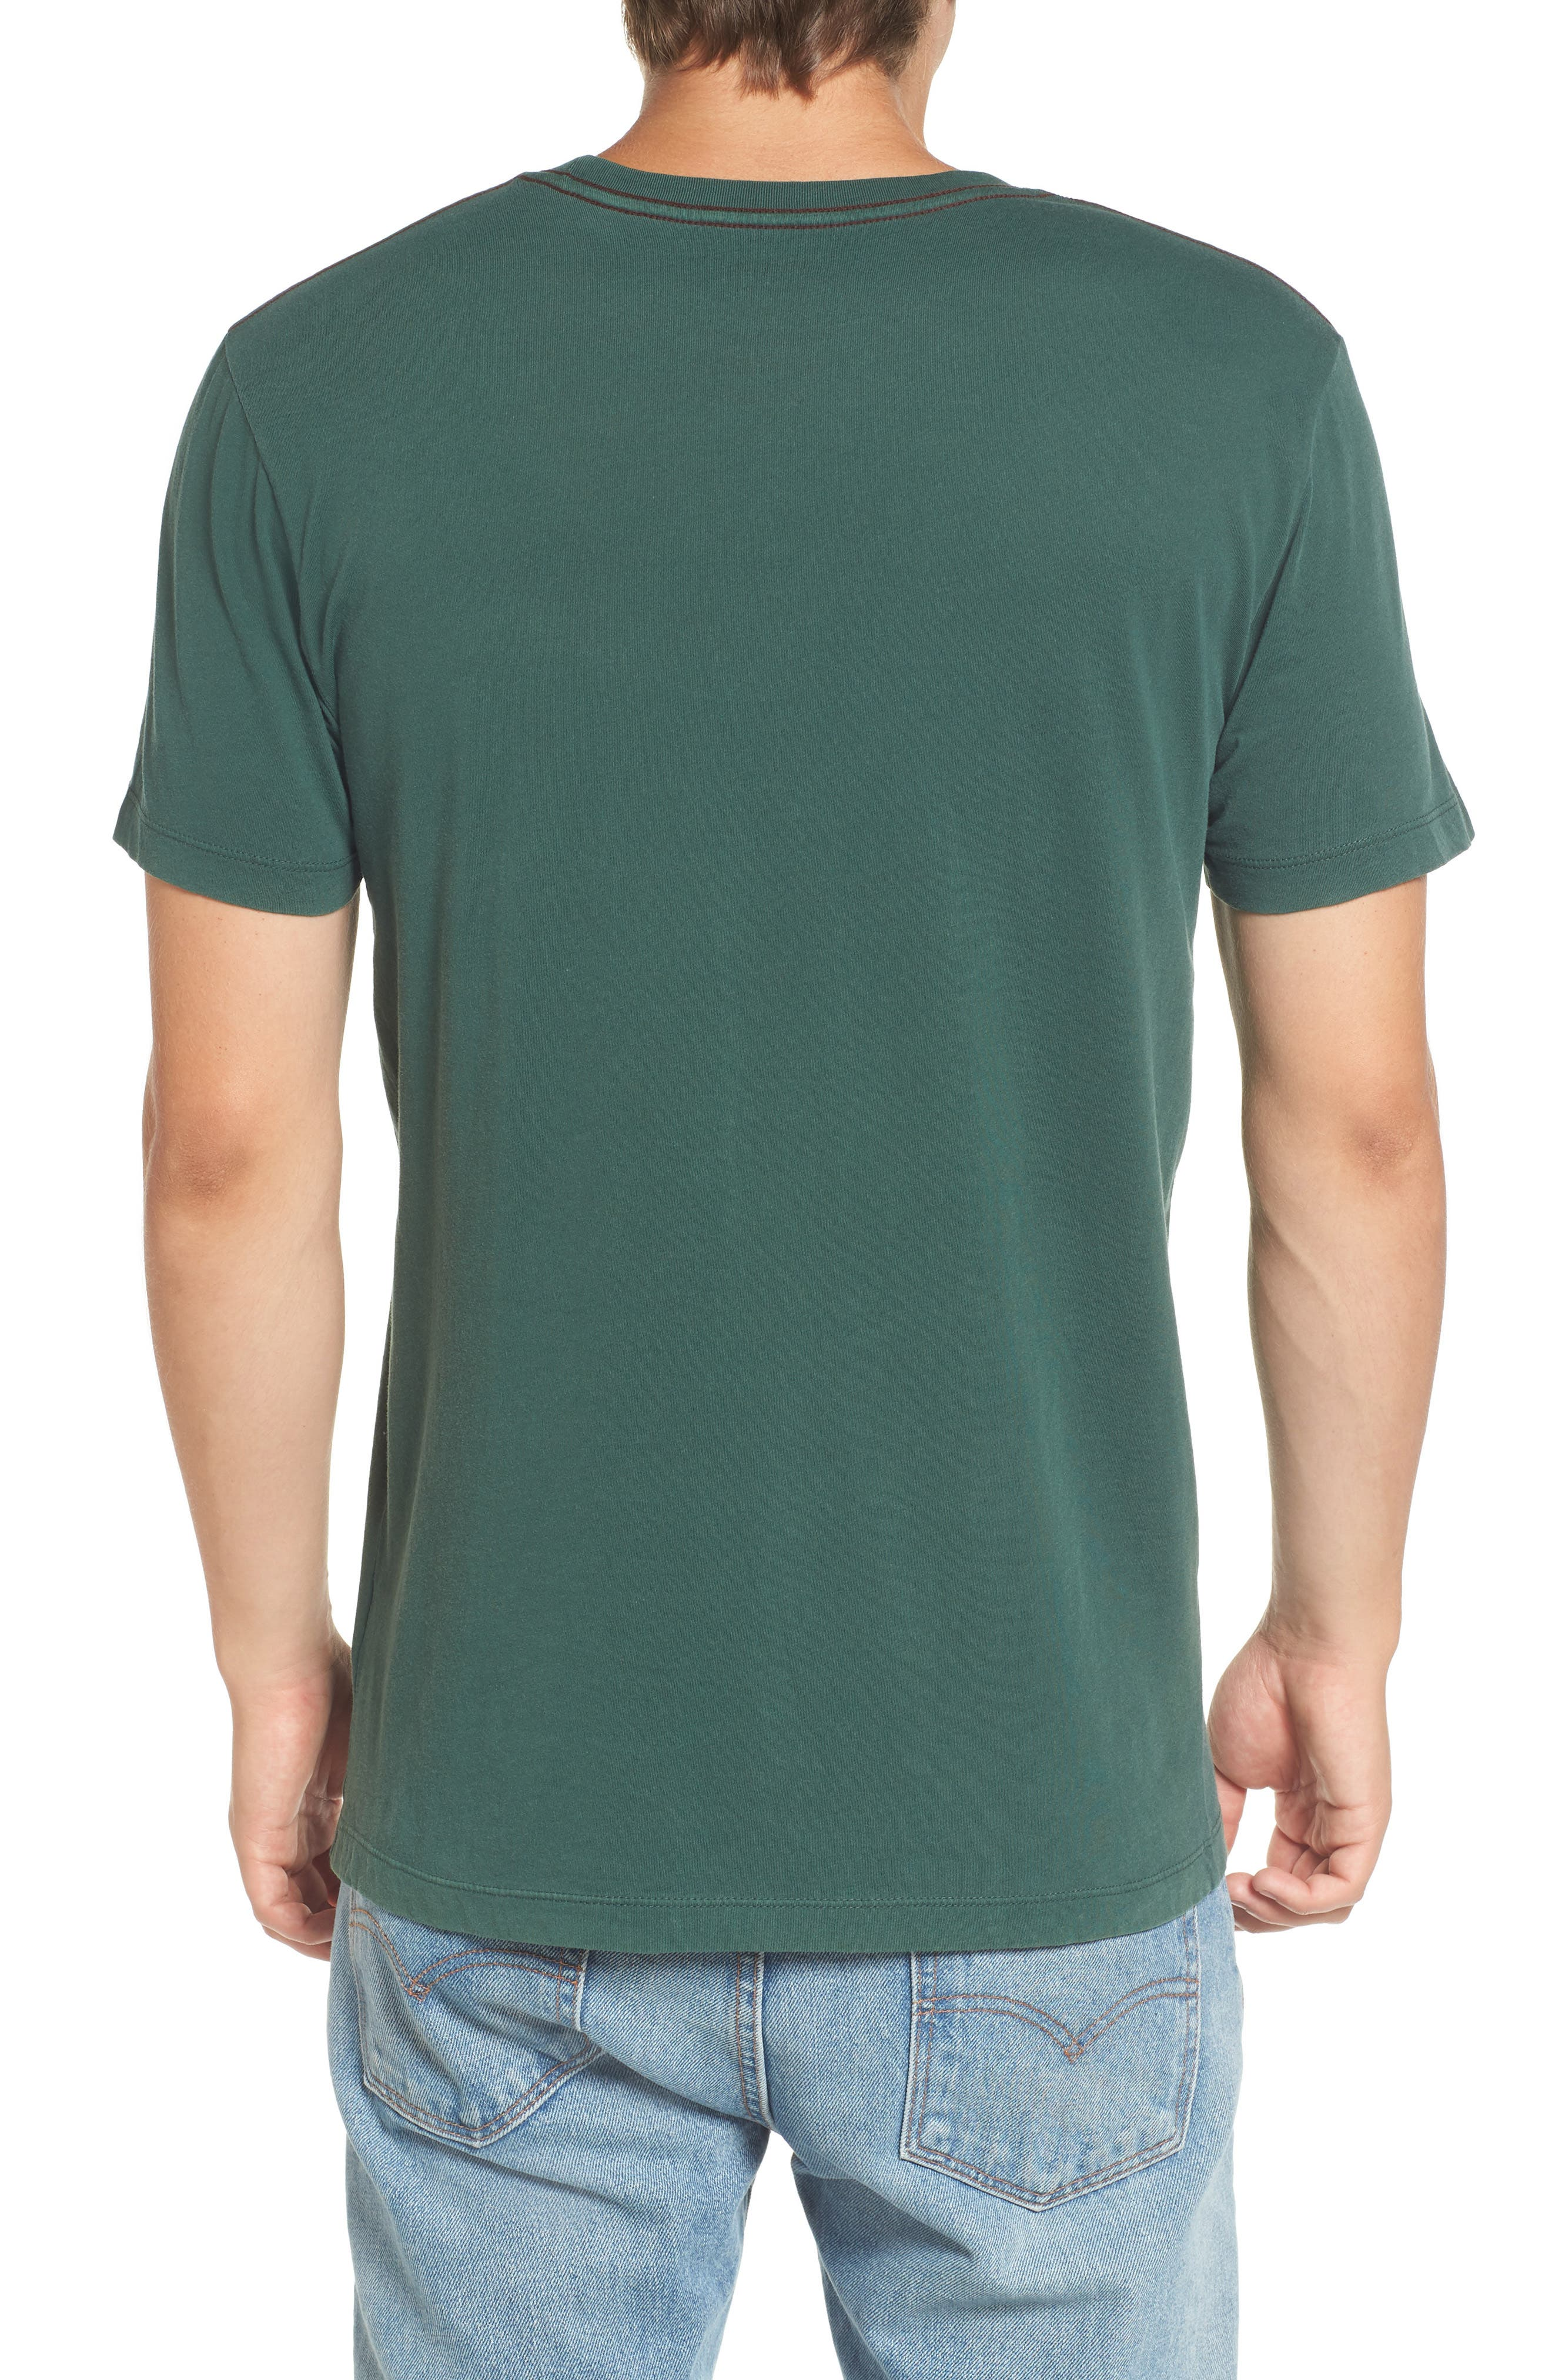 'PTC 2' T-Shirt,                             Alternate thumbnail 2, color,                             Sycamore